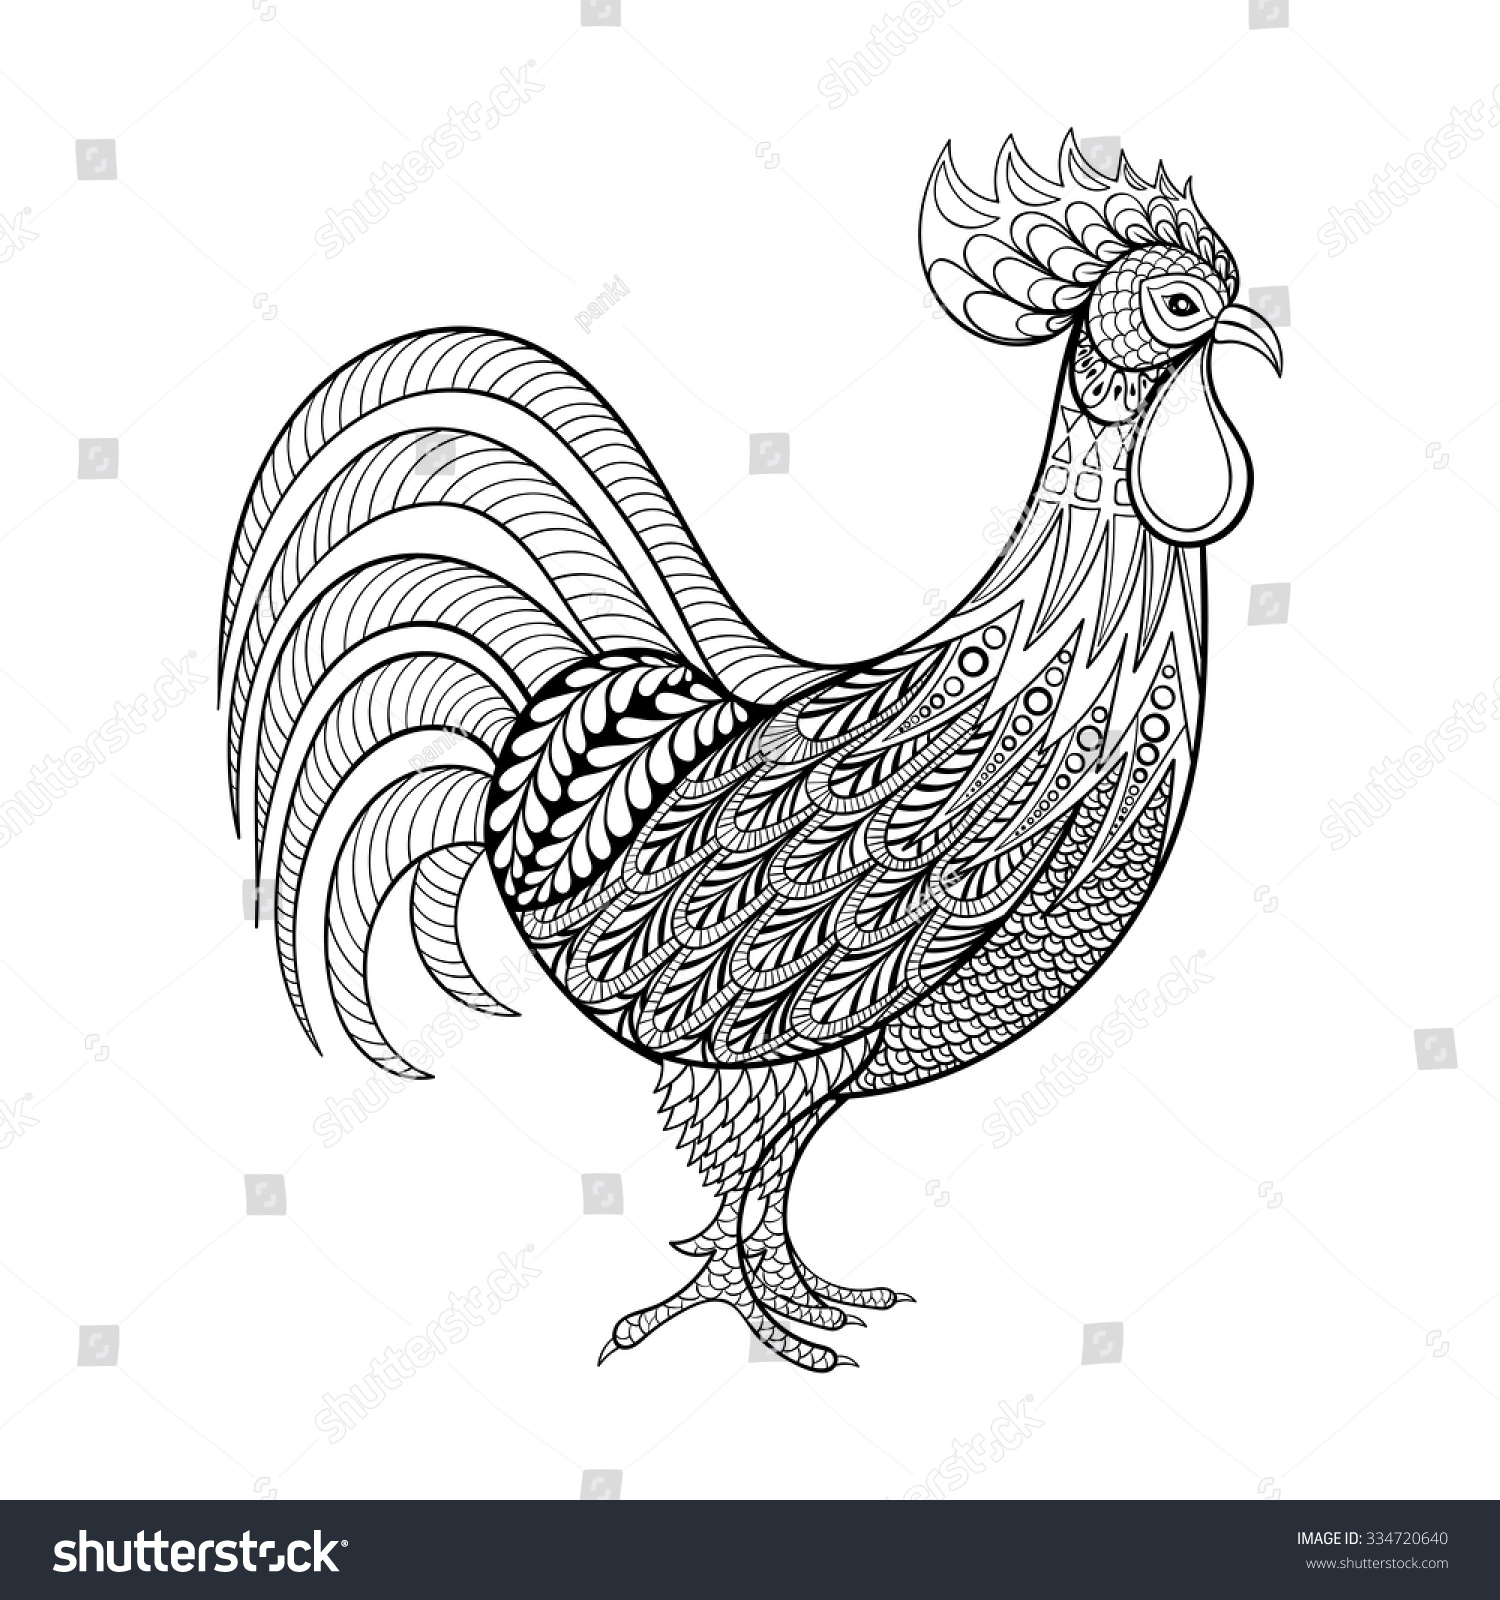 Coloring Pages For Adults Rooster : Rooster chicken domestic farmer bird coloring stock vector